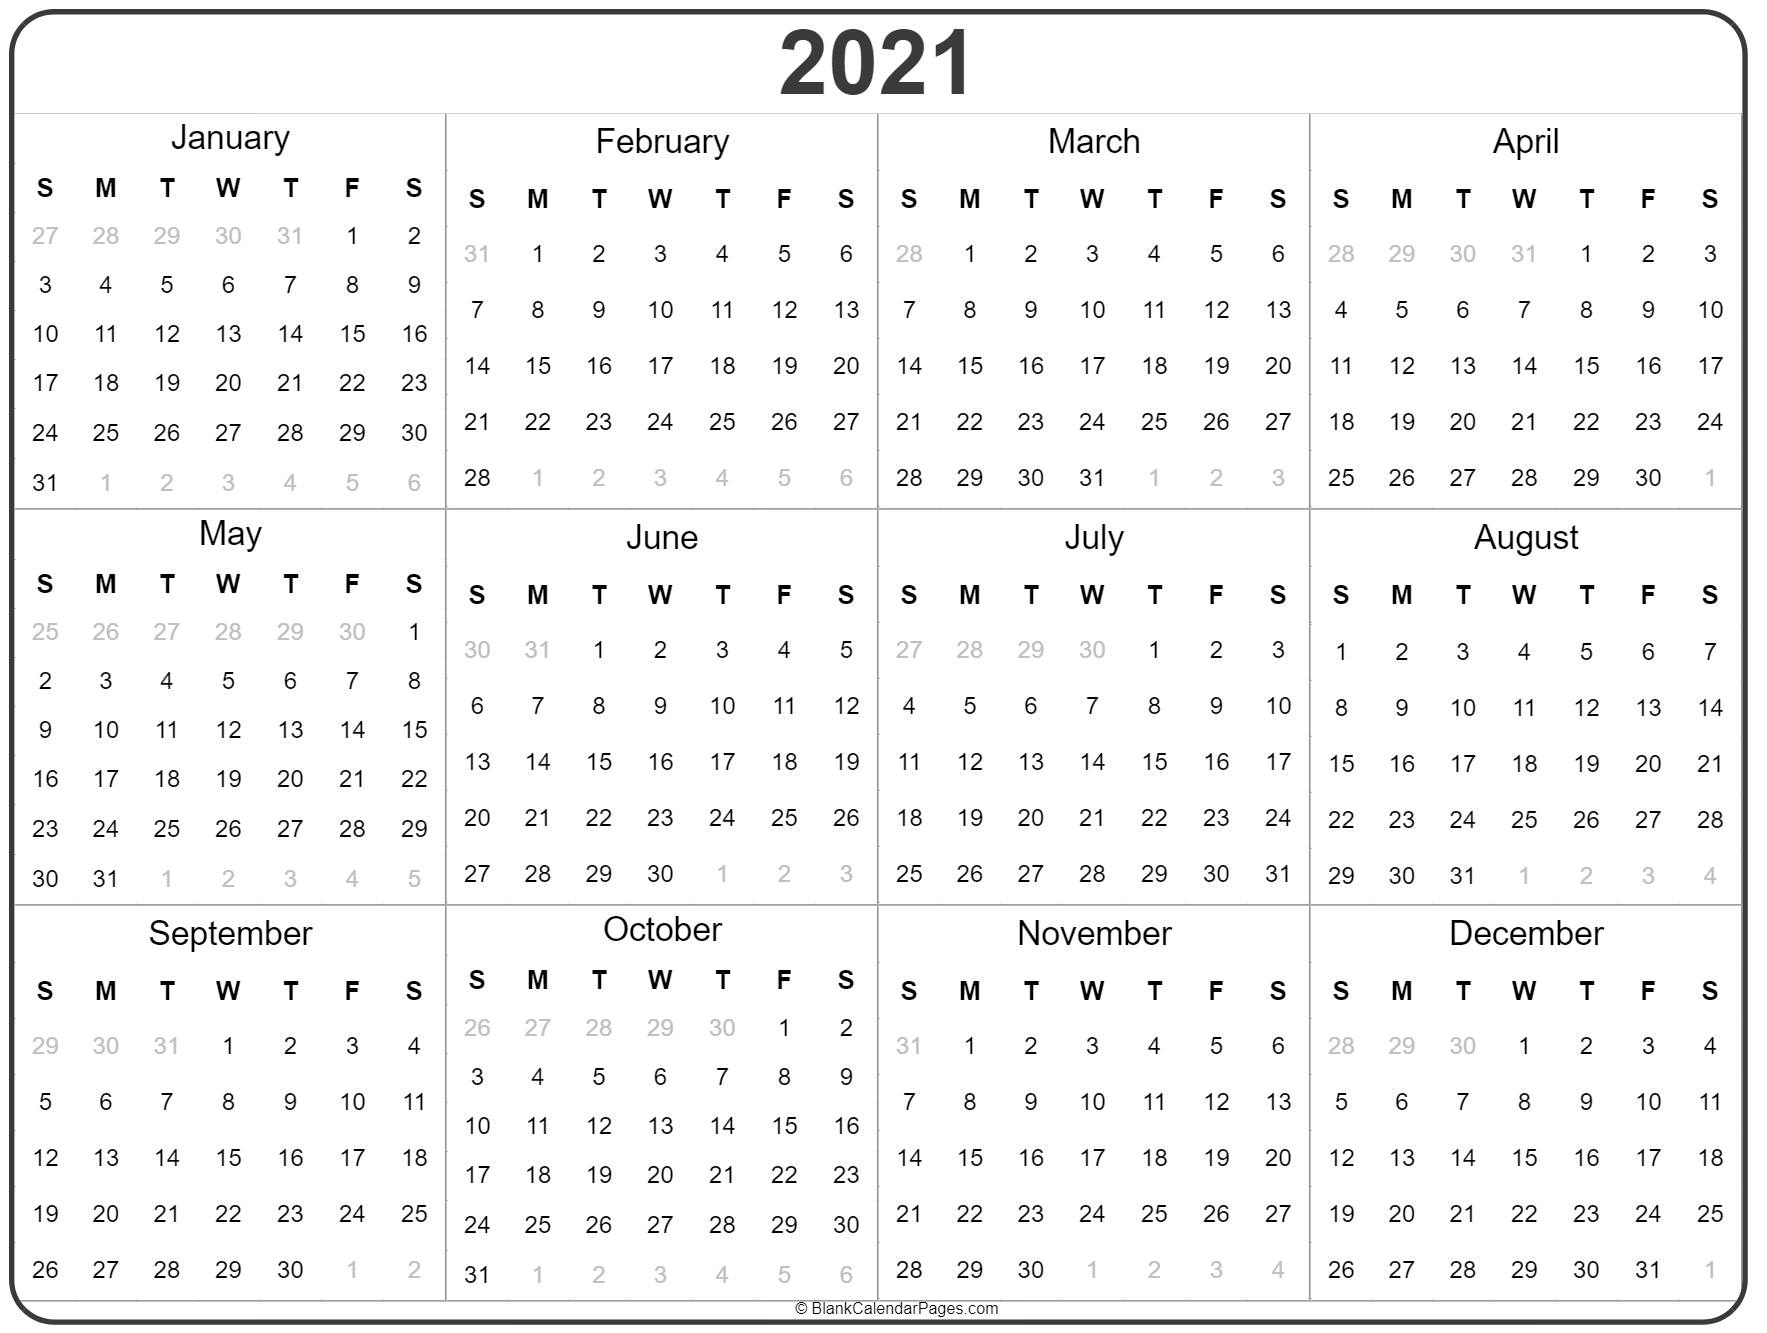 2021 Yearly Calendar Template Printable